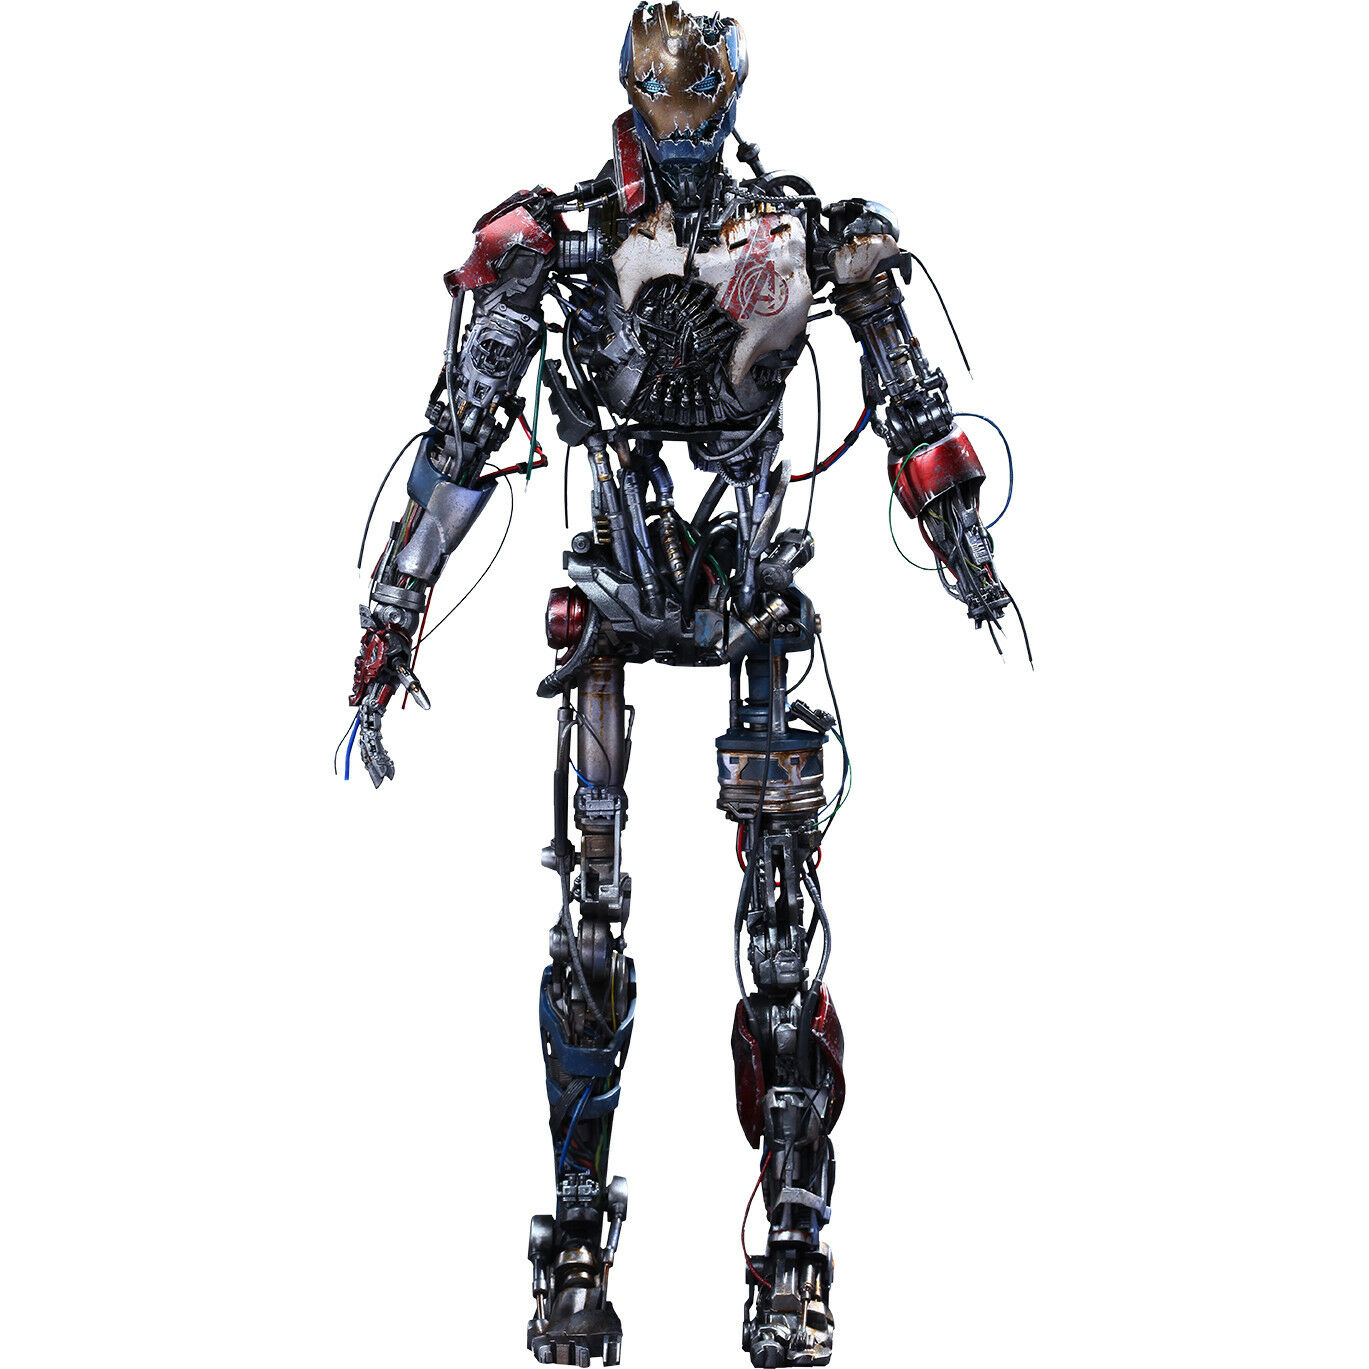 Avengers 2: Age of Ultron - Ultron Mark I (1) 1/6th Scale Hot Toys Action Figure